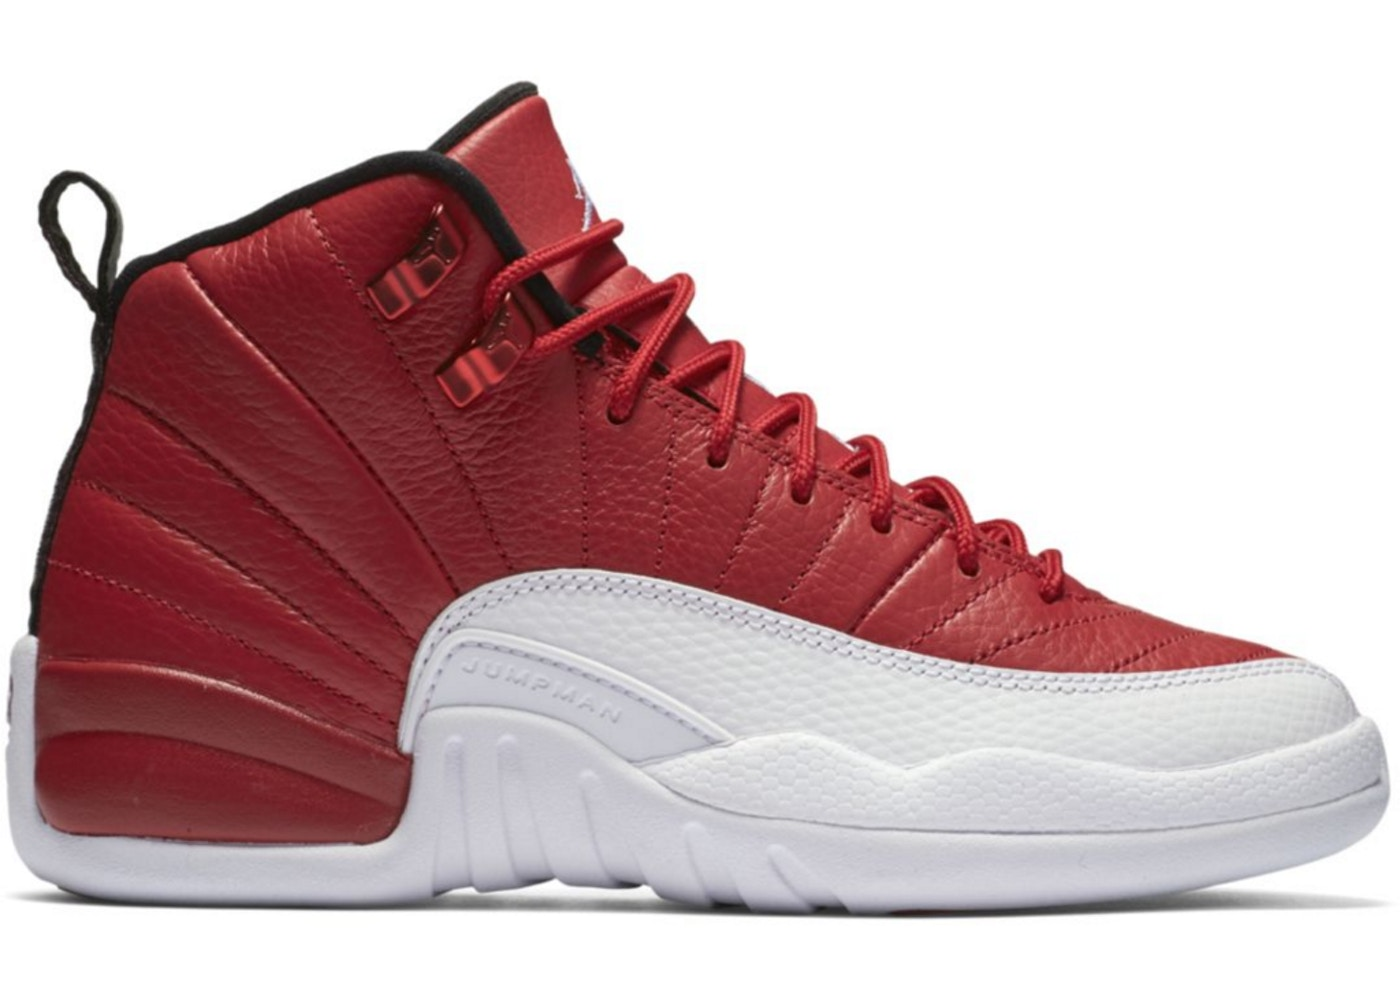 new concept 92375 05d44 Jordan 12 Retro Gym Red (GS)